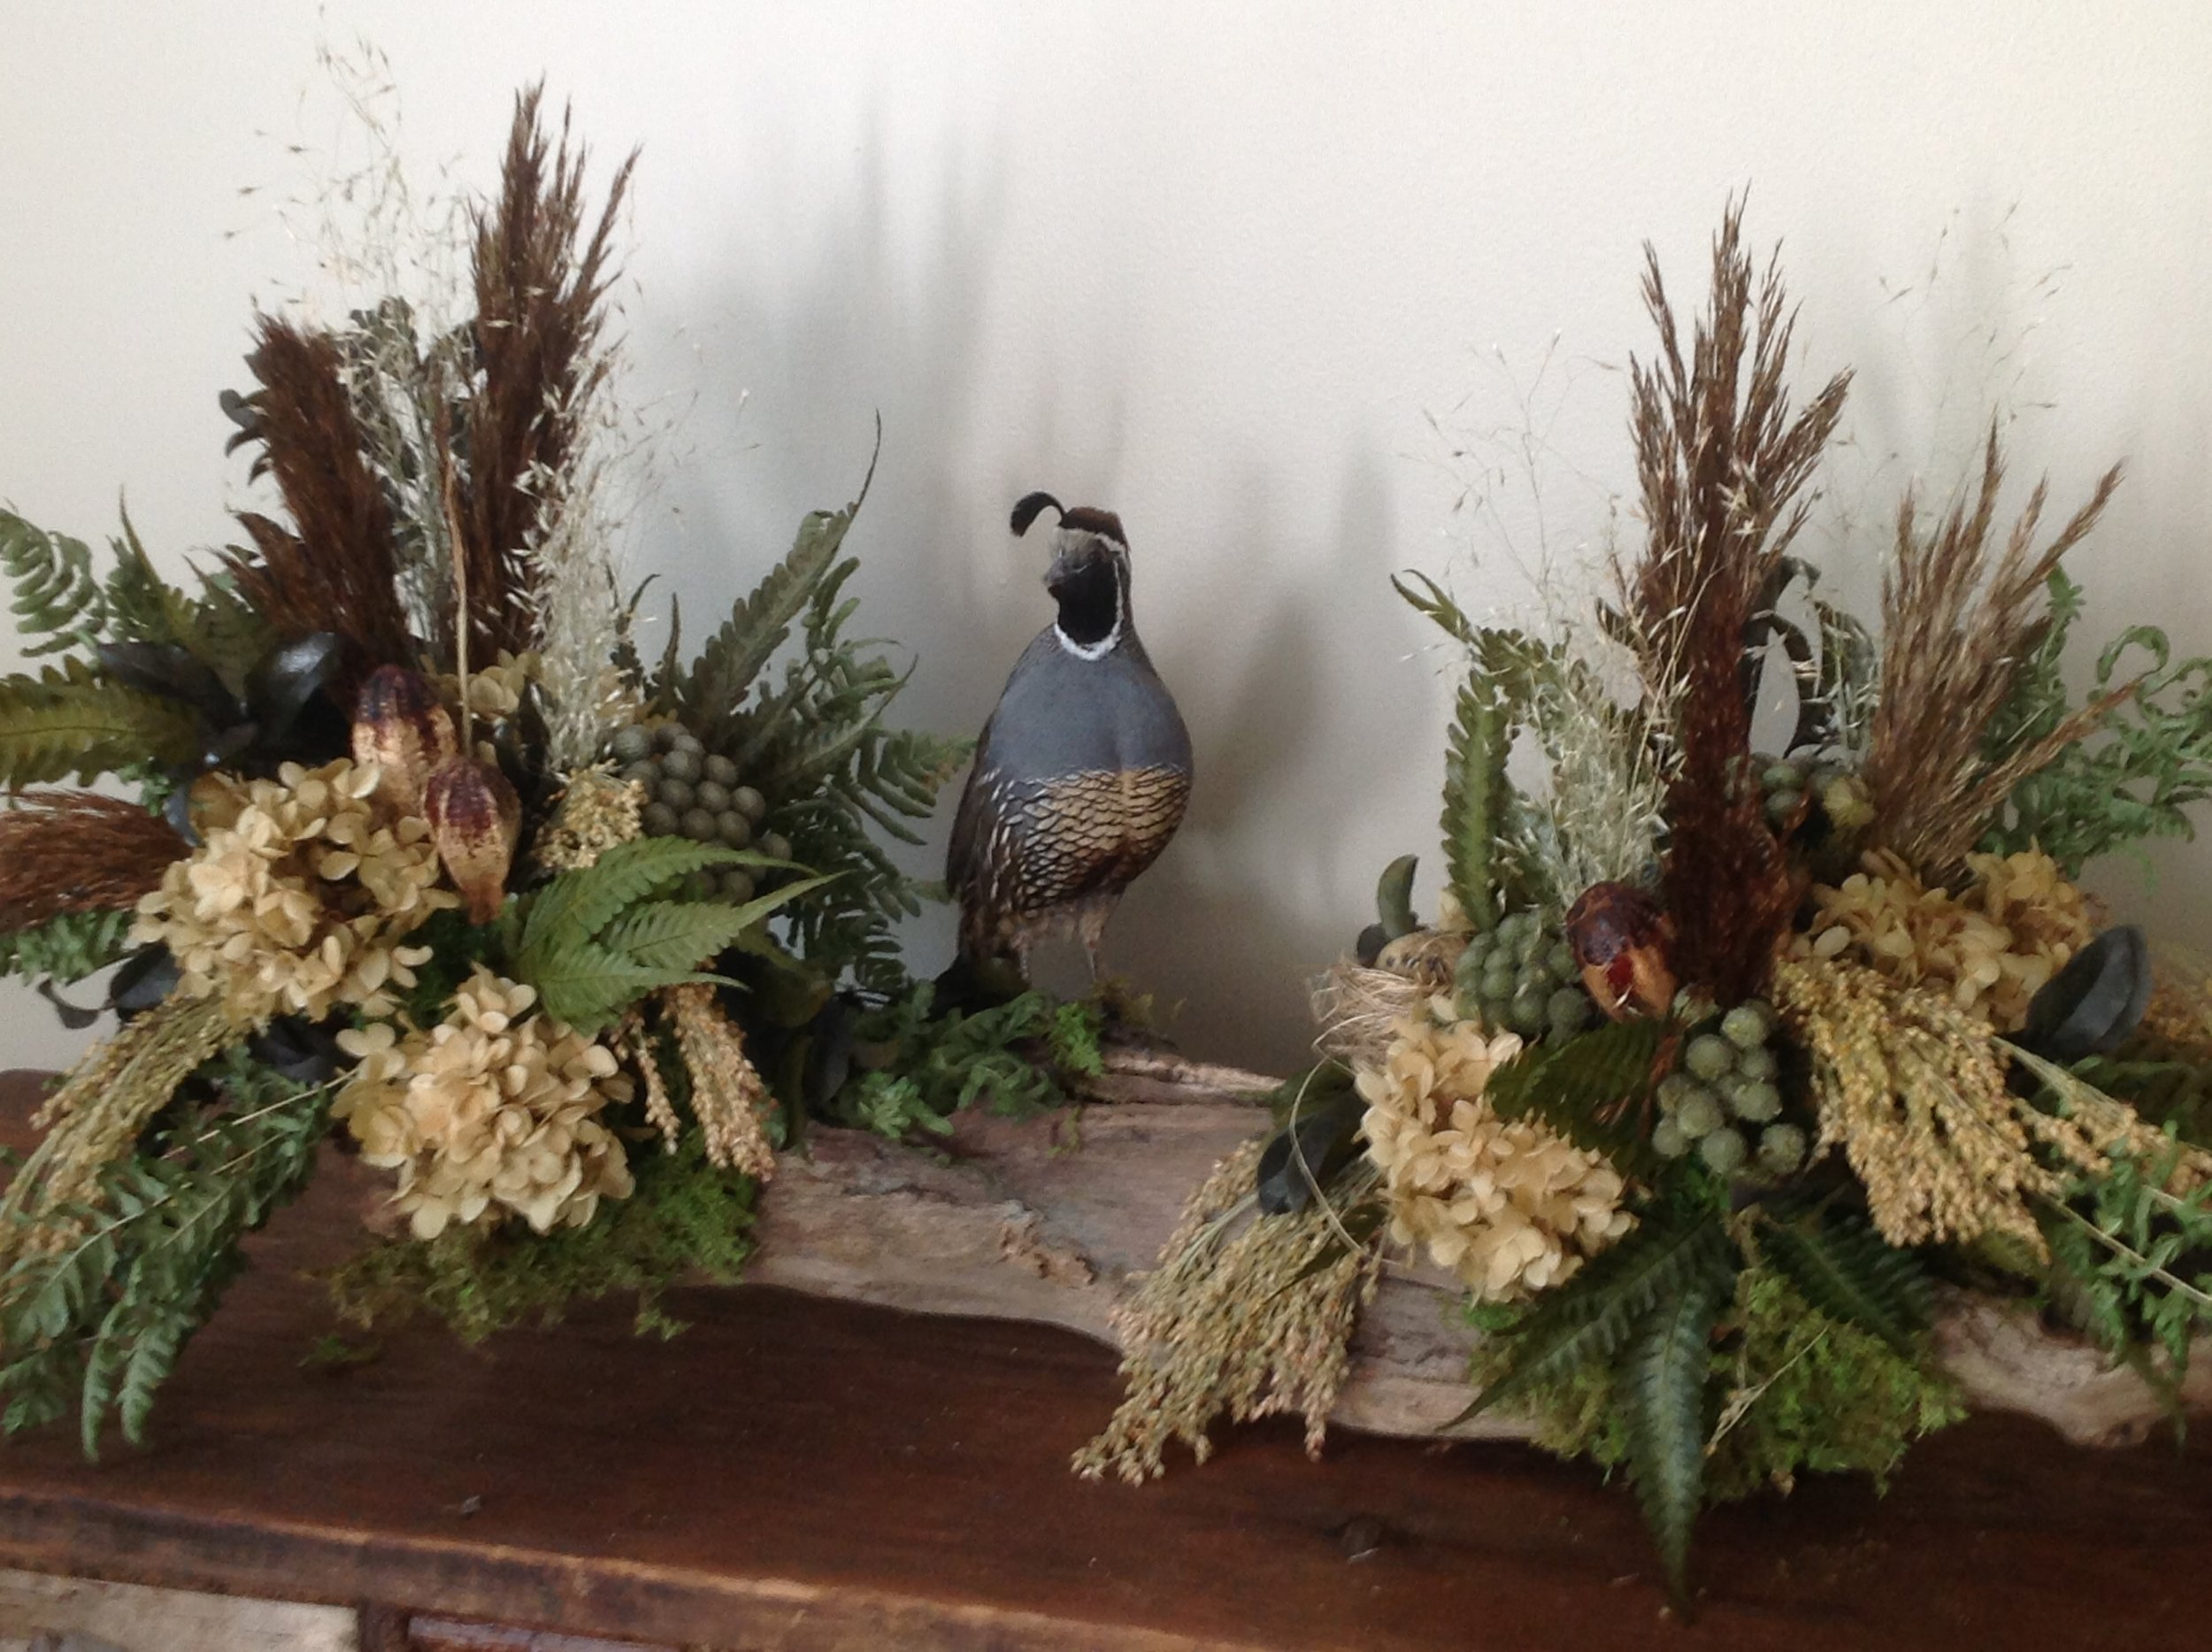 Gambrel quail on log